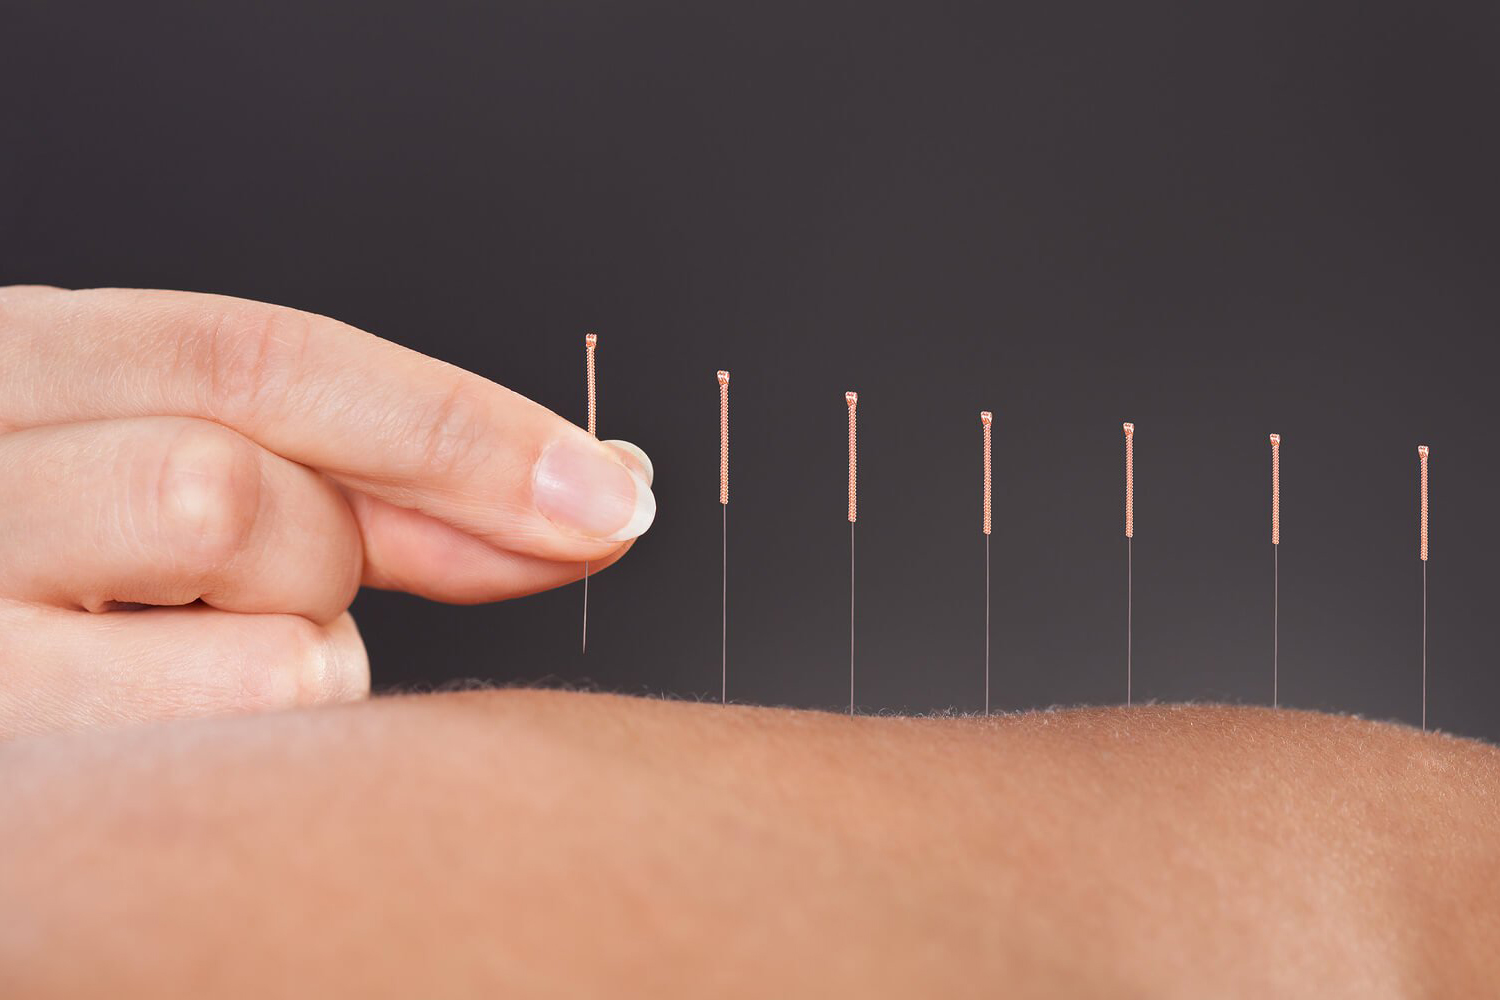 What is Acupuncture, Define Acupuncture, Different Acupuncture Treatments, Local Acupuncture Treatments, Acupuncture Therapy Treatments